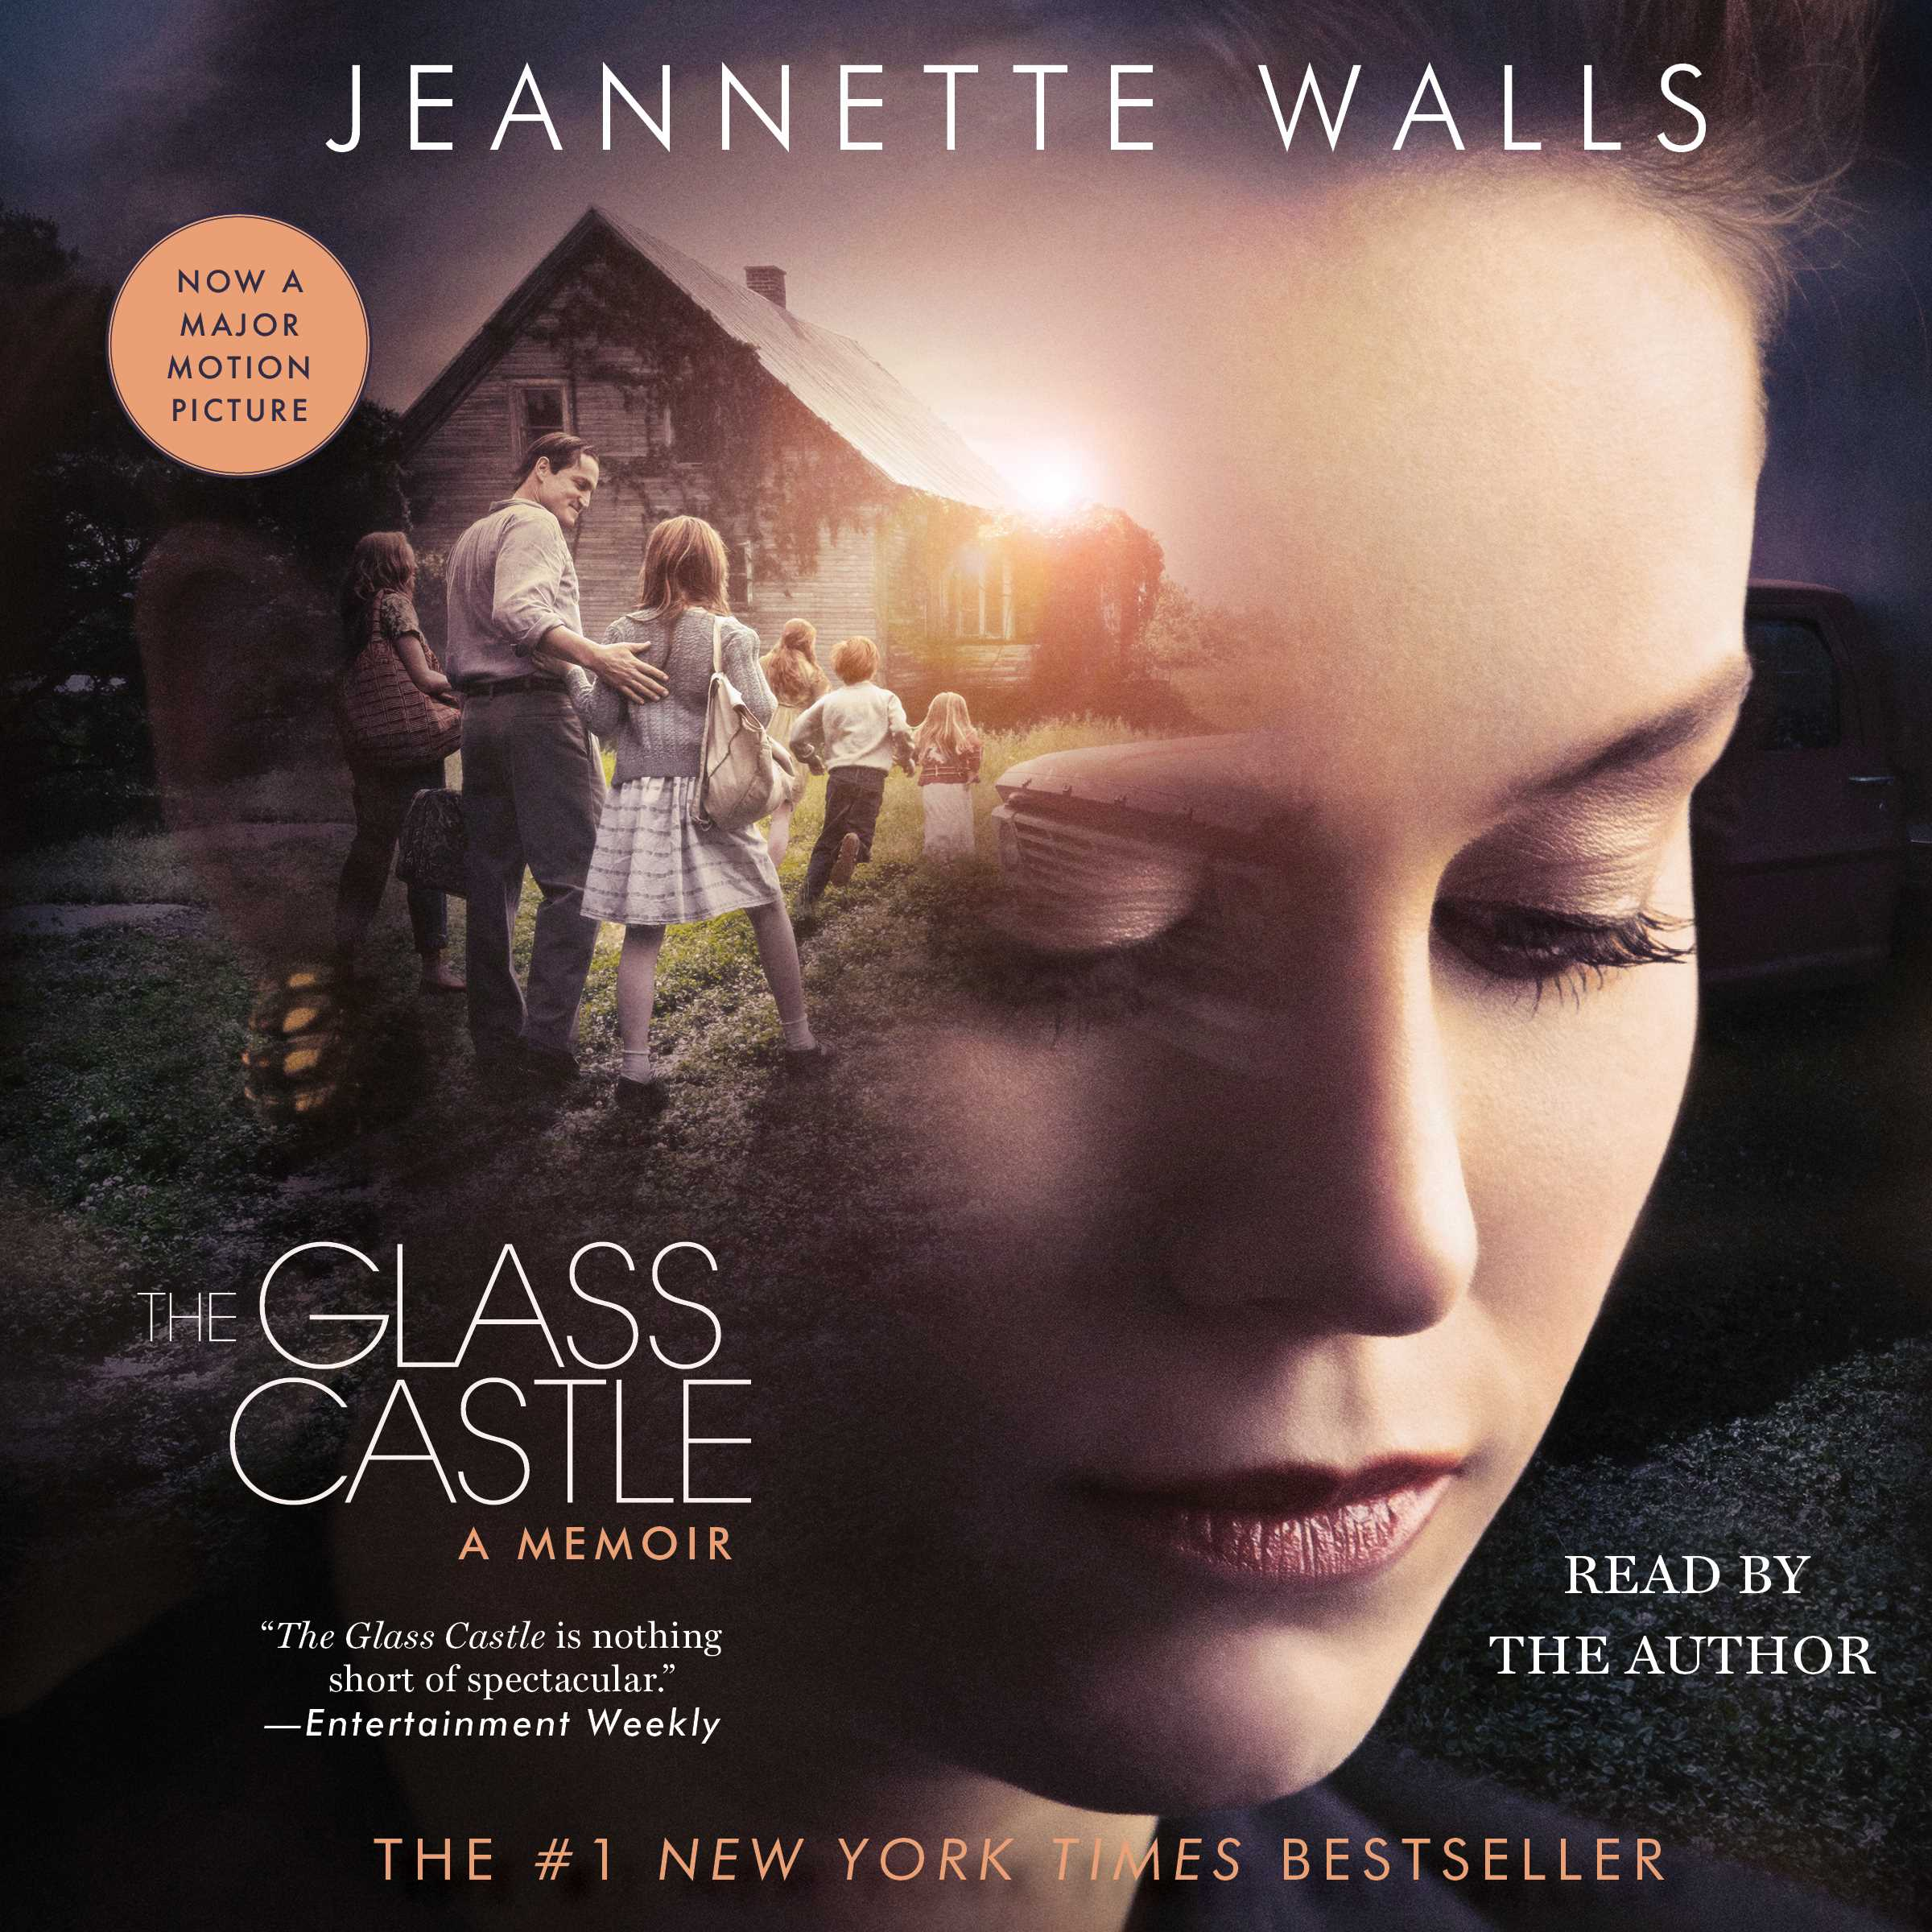 The glass castle 9781442339712 hr